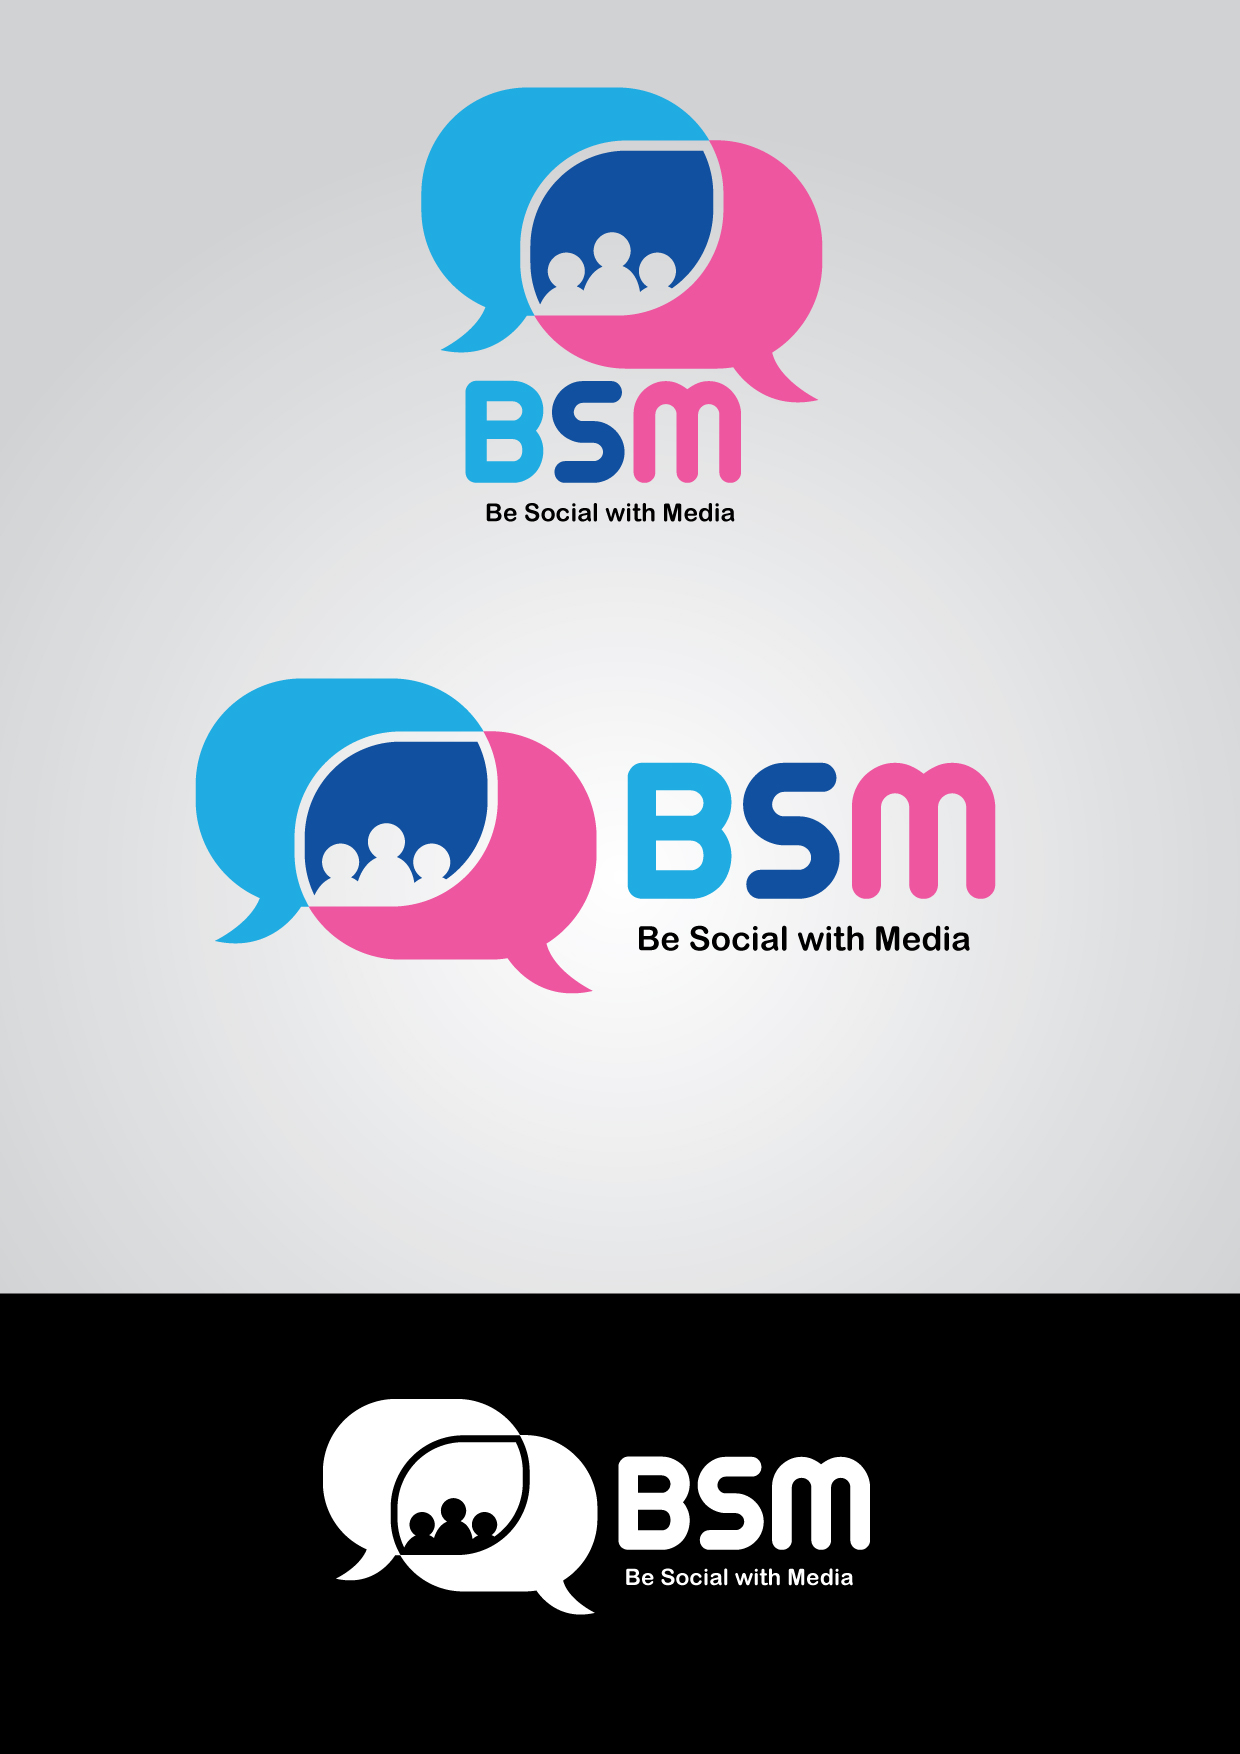 Logo Design by mediaproductionart - Entry No. 86 in the Logo Design Contest Imaginative Logo Design for Be Social With Media.